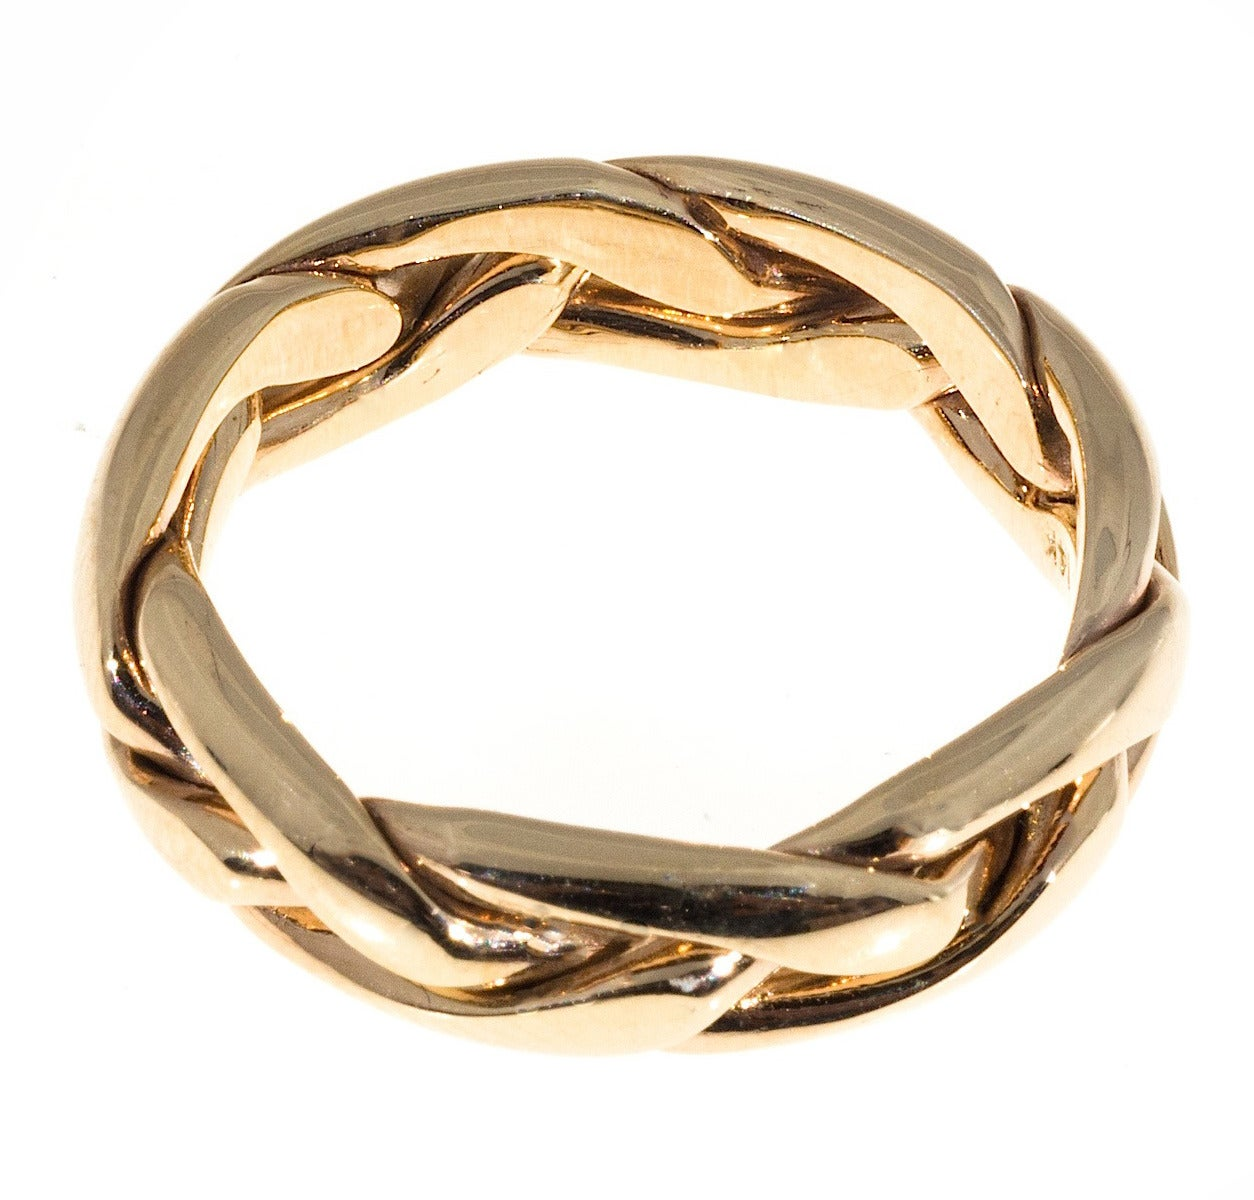 Samuel jewels hand wrapped woven three row gold wedding for Woven wedding ring